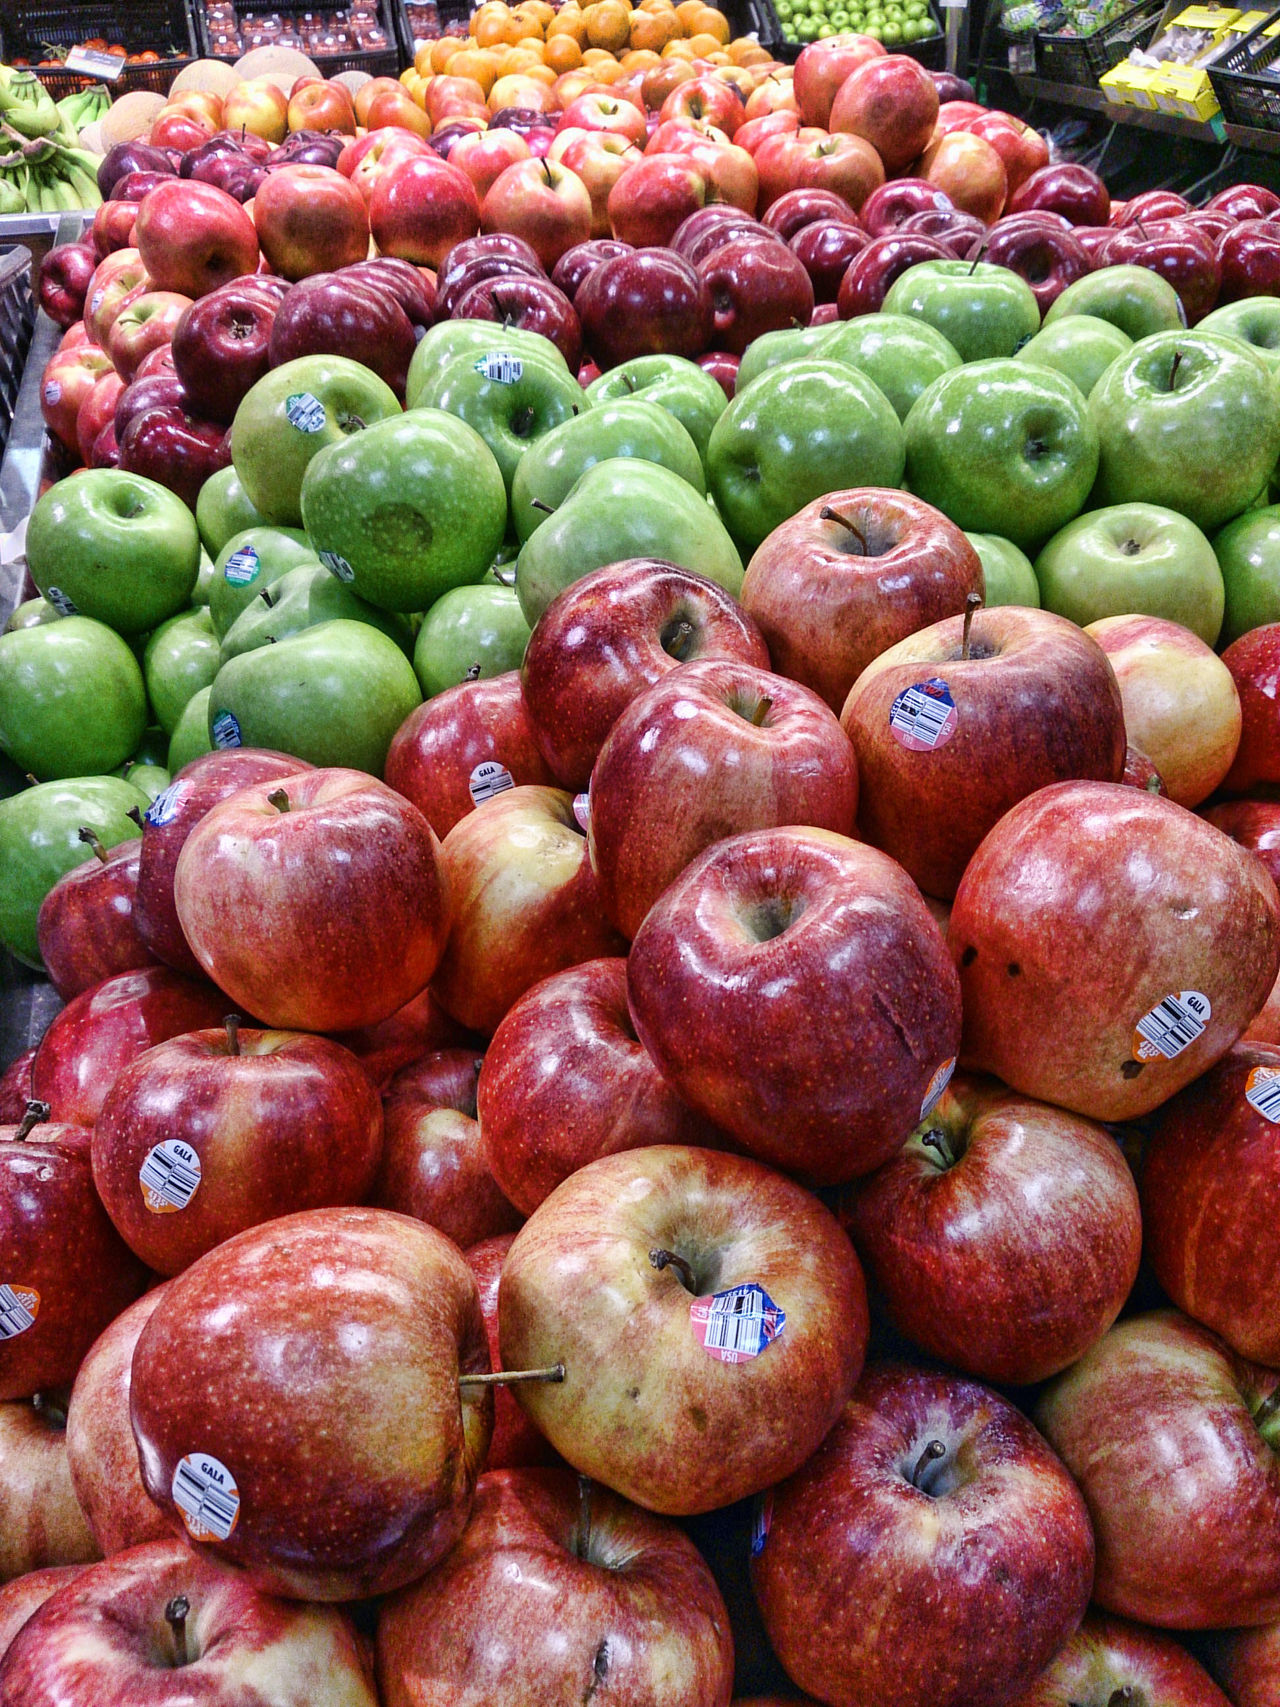 at the supermaket Apple - Fruit Apples Close-up Eat Healthy EyeEm Fruit Collection Eyeem Fruit Shot Eyeem Fruits For Sale Fruit Green Market Stall Red